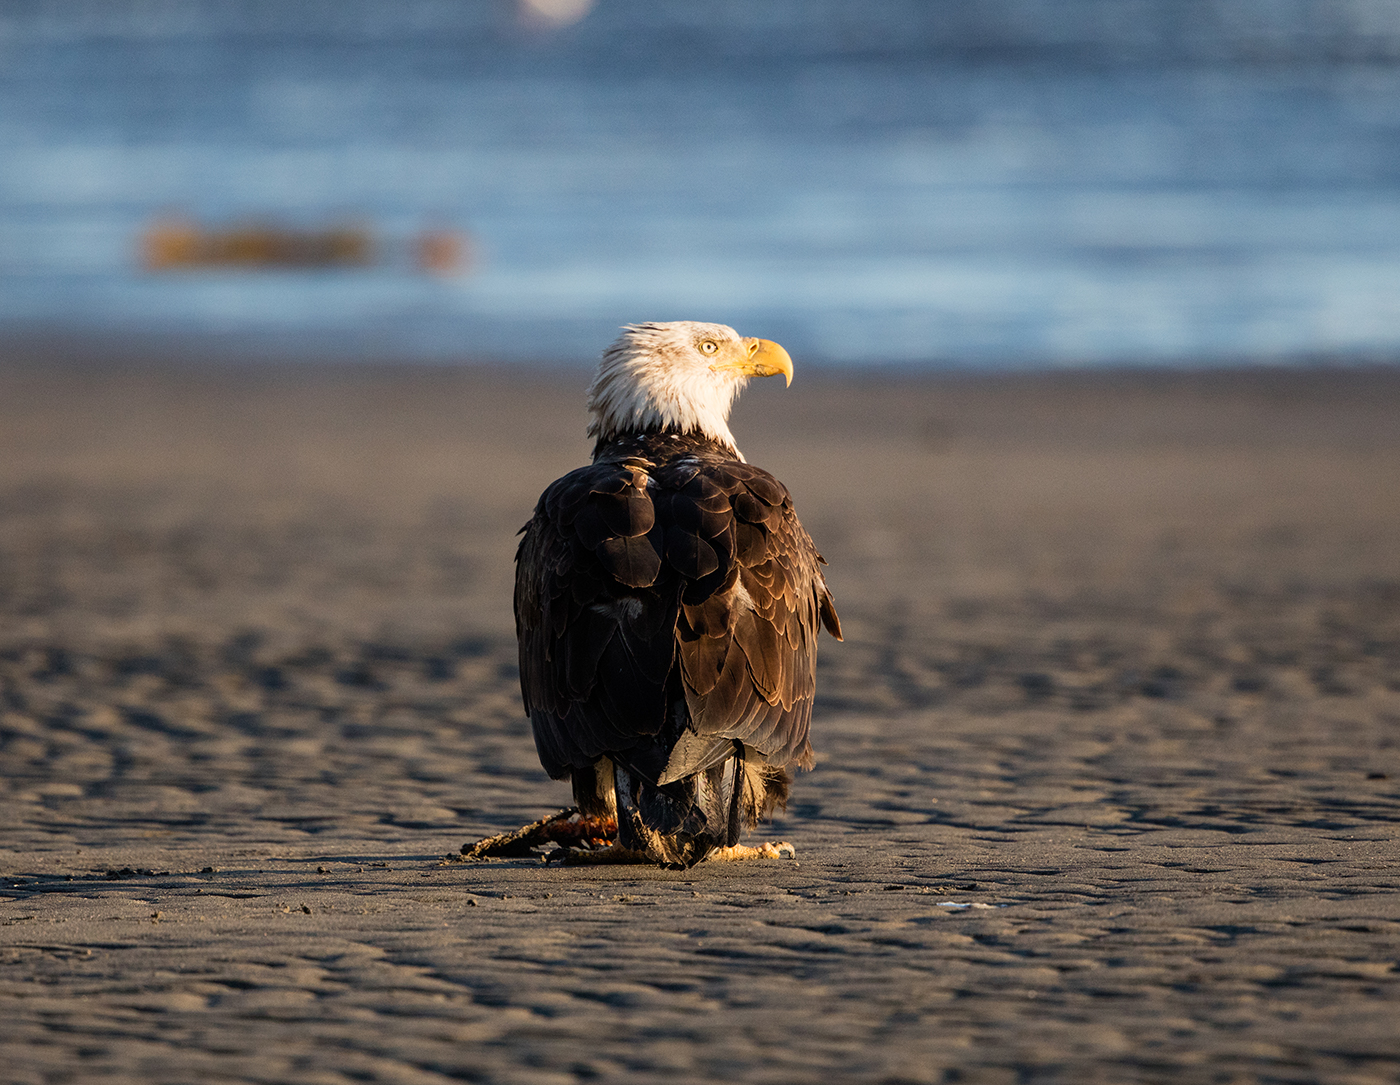 Bald Eagle sitting on the beach